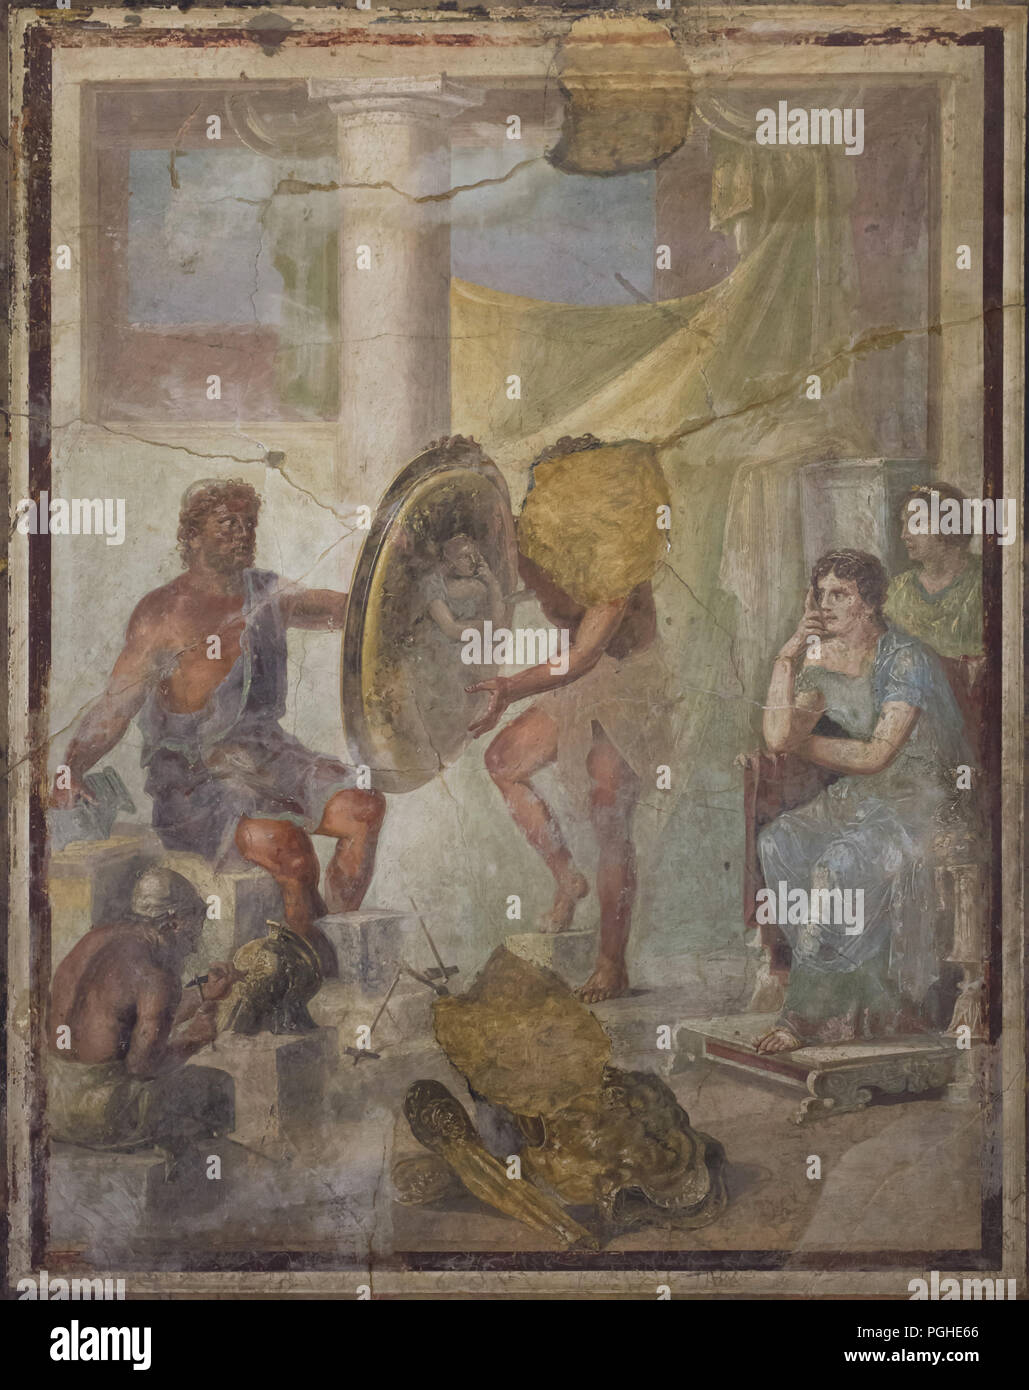 Hephaestus presenting the Arms of Achilles to Thetis